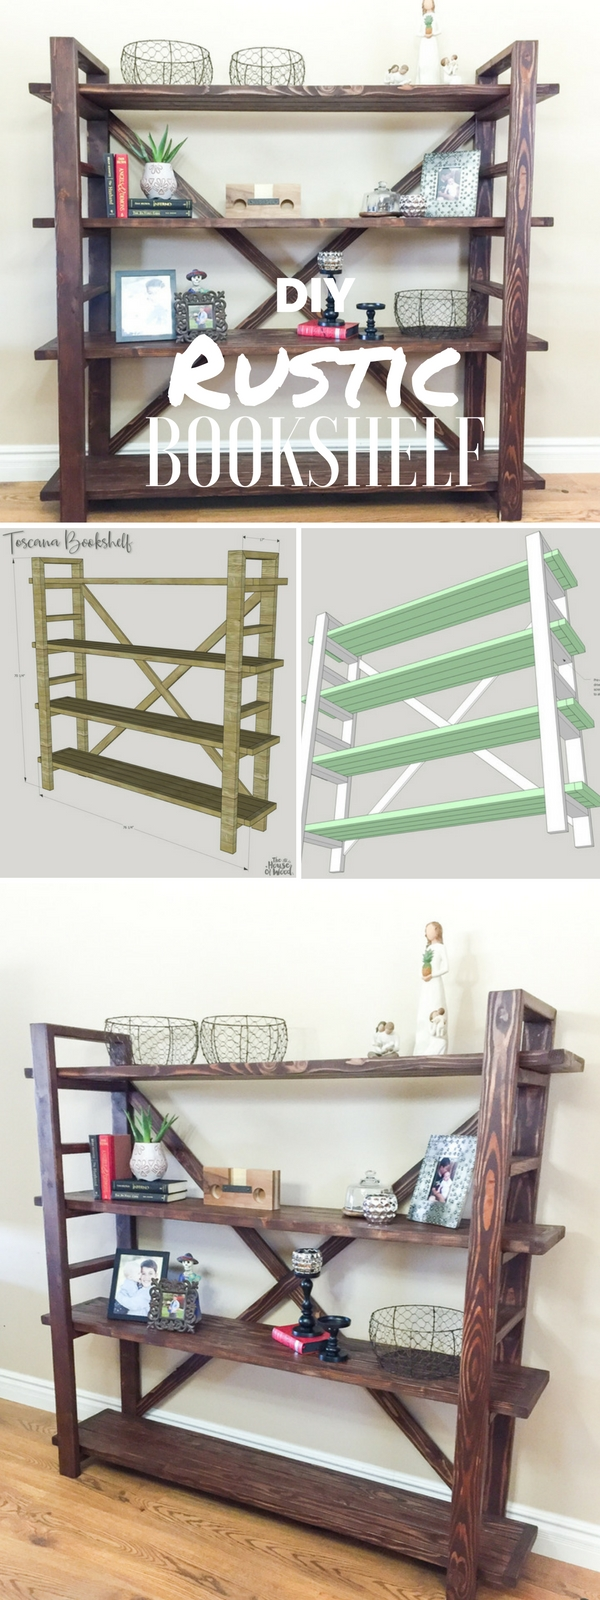 Check out the tutorial: #DIY Rustic Bookshelf